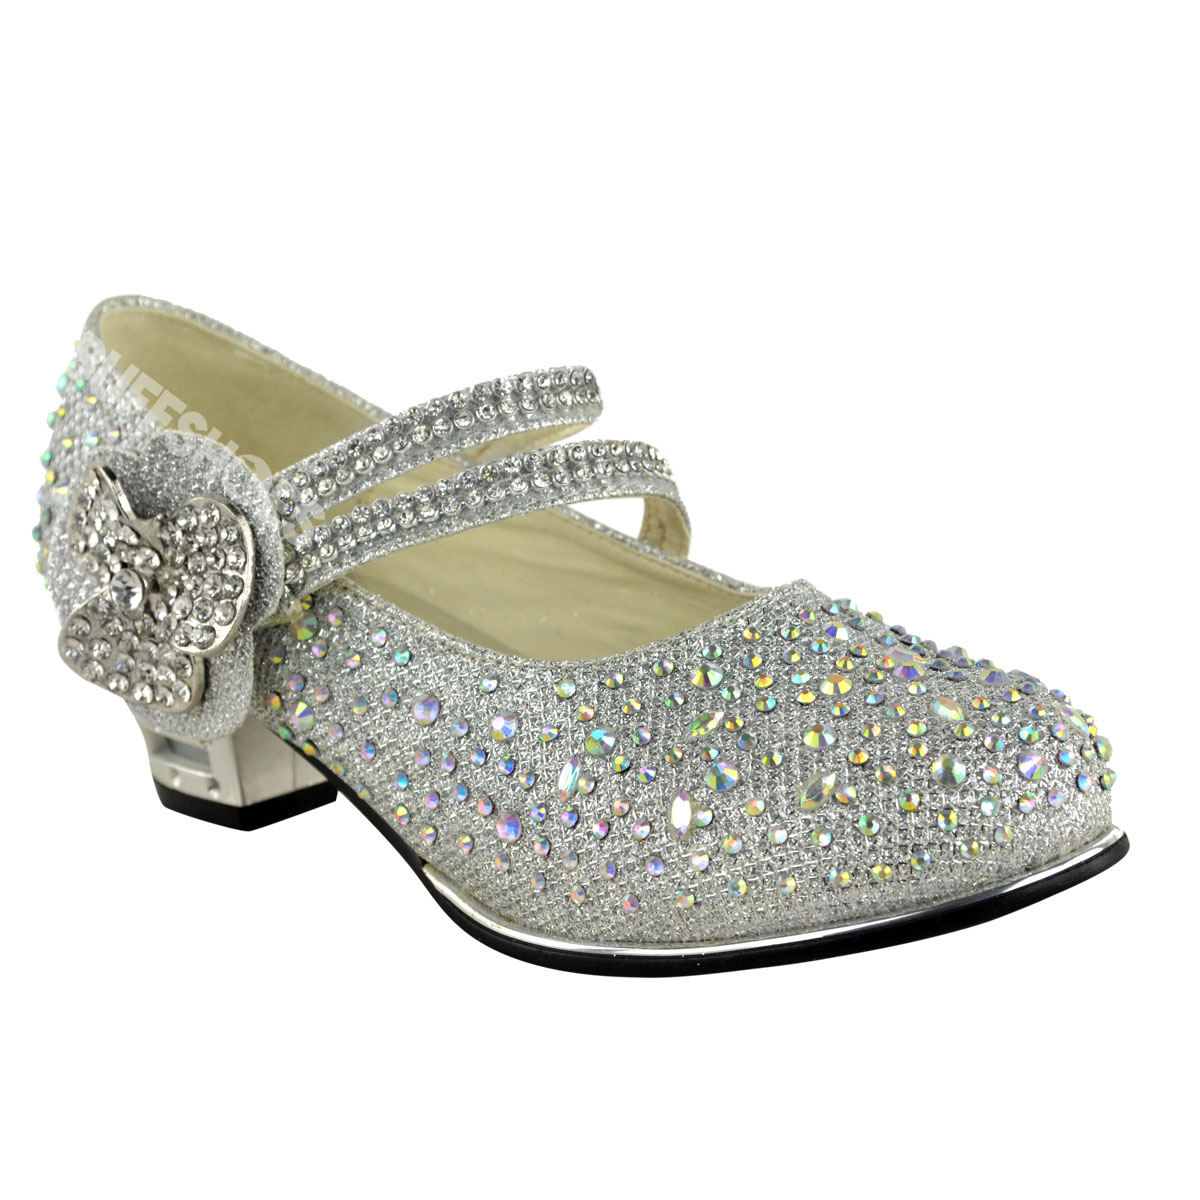 CHILDRENS GIRLS KIDS MID LOW HIGH HEEL DIAMANTE PARTY SHOES BRIDAL